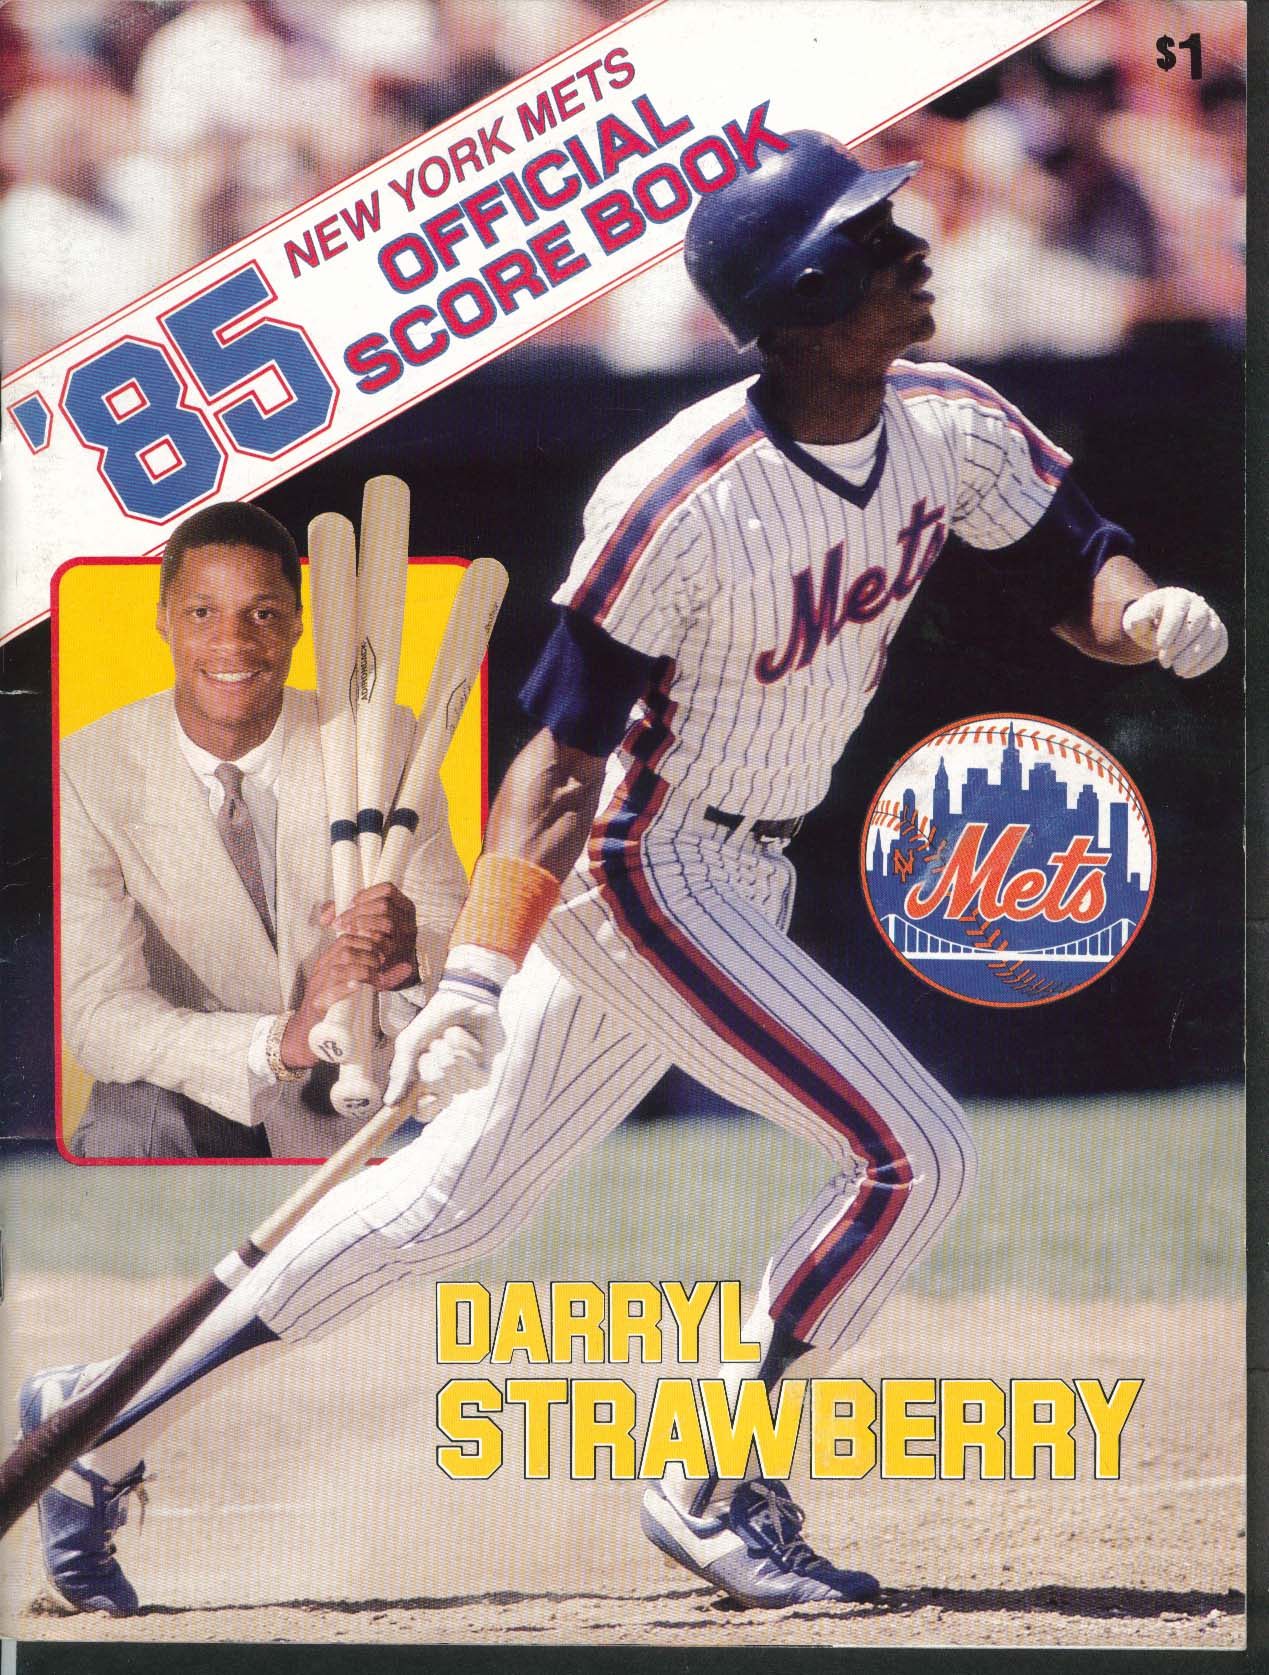 New York Mets Official Score Book 1985 Darryl Strawberry Scored vs Cubs